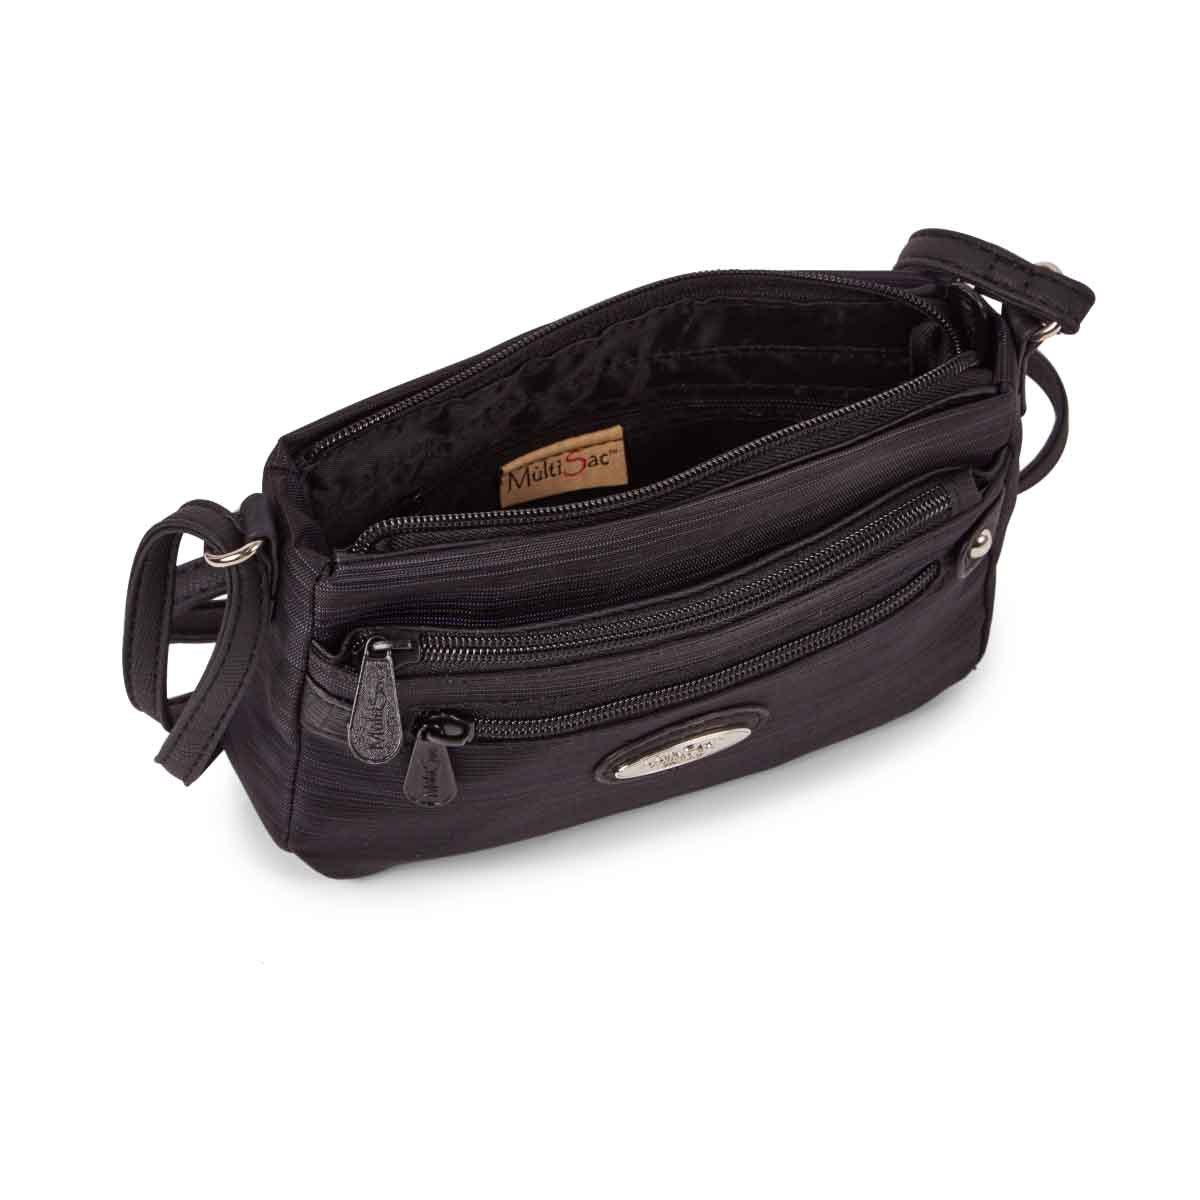 Lds Micro Sleek blk/blk crossbody bag